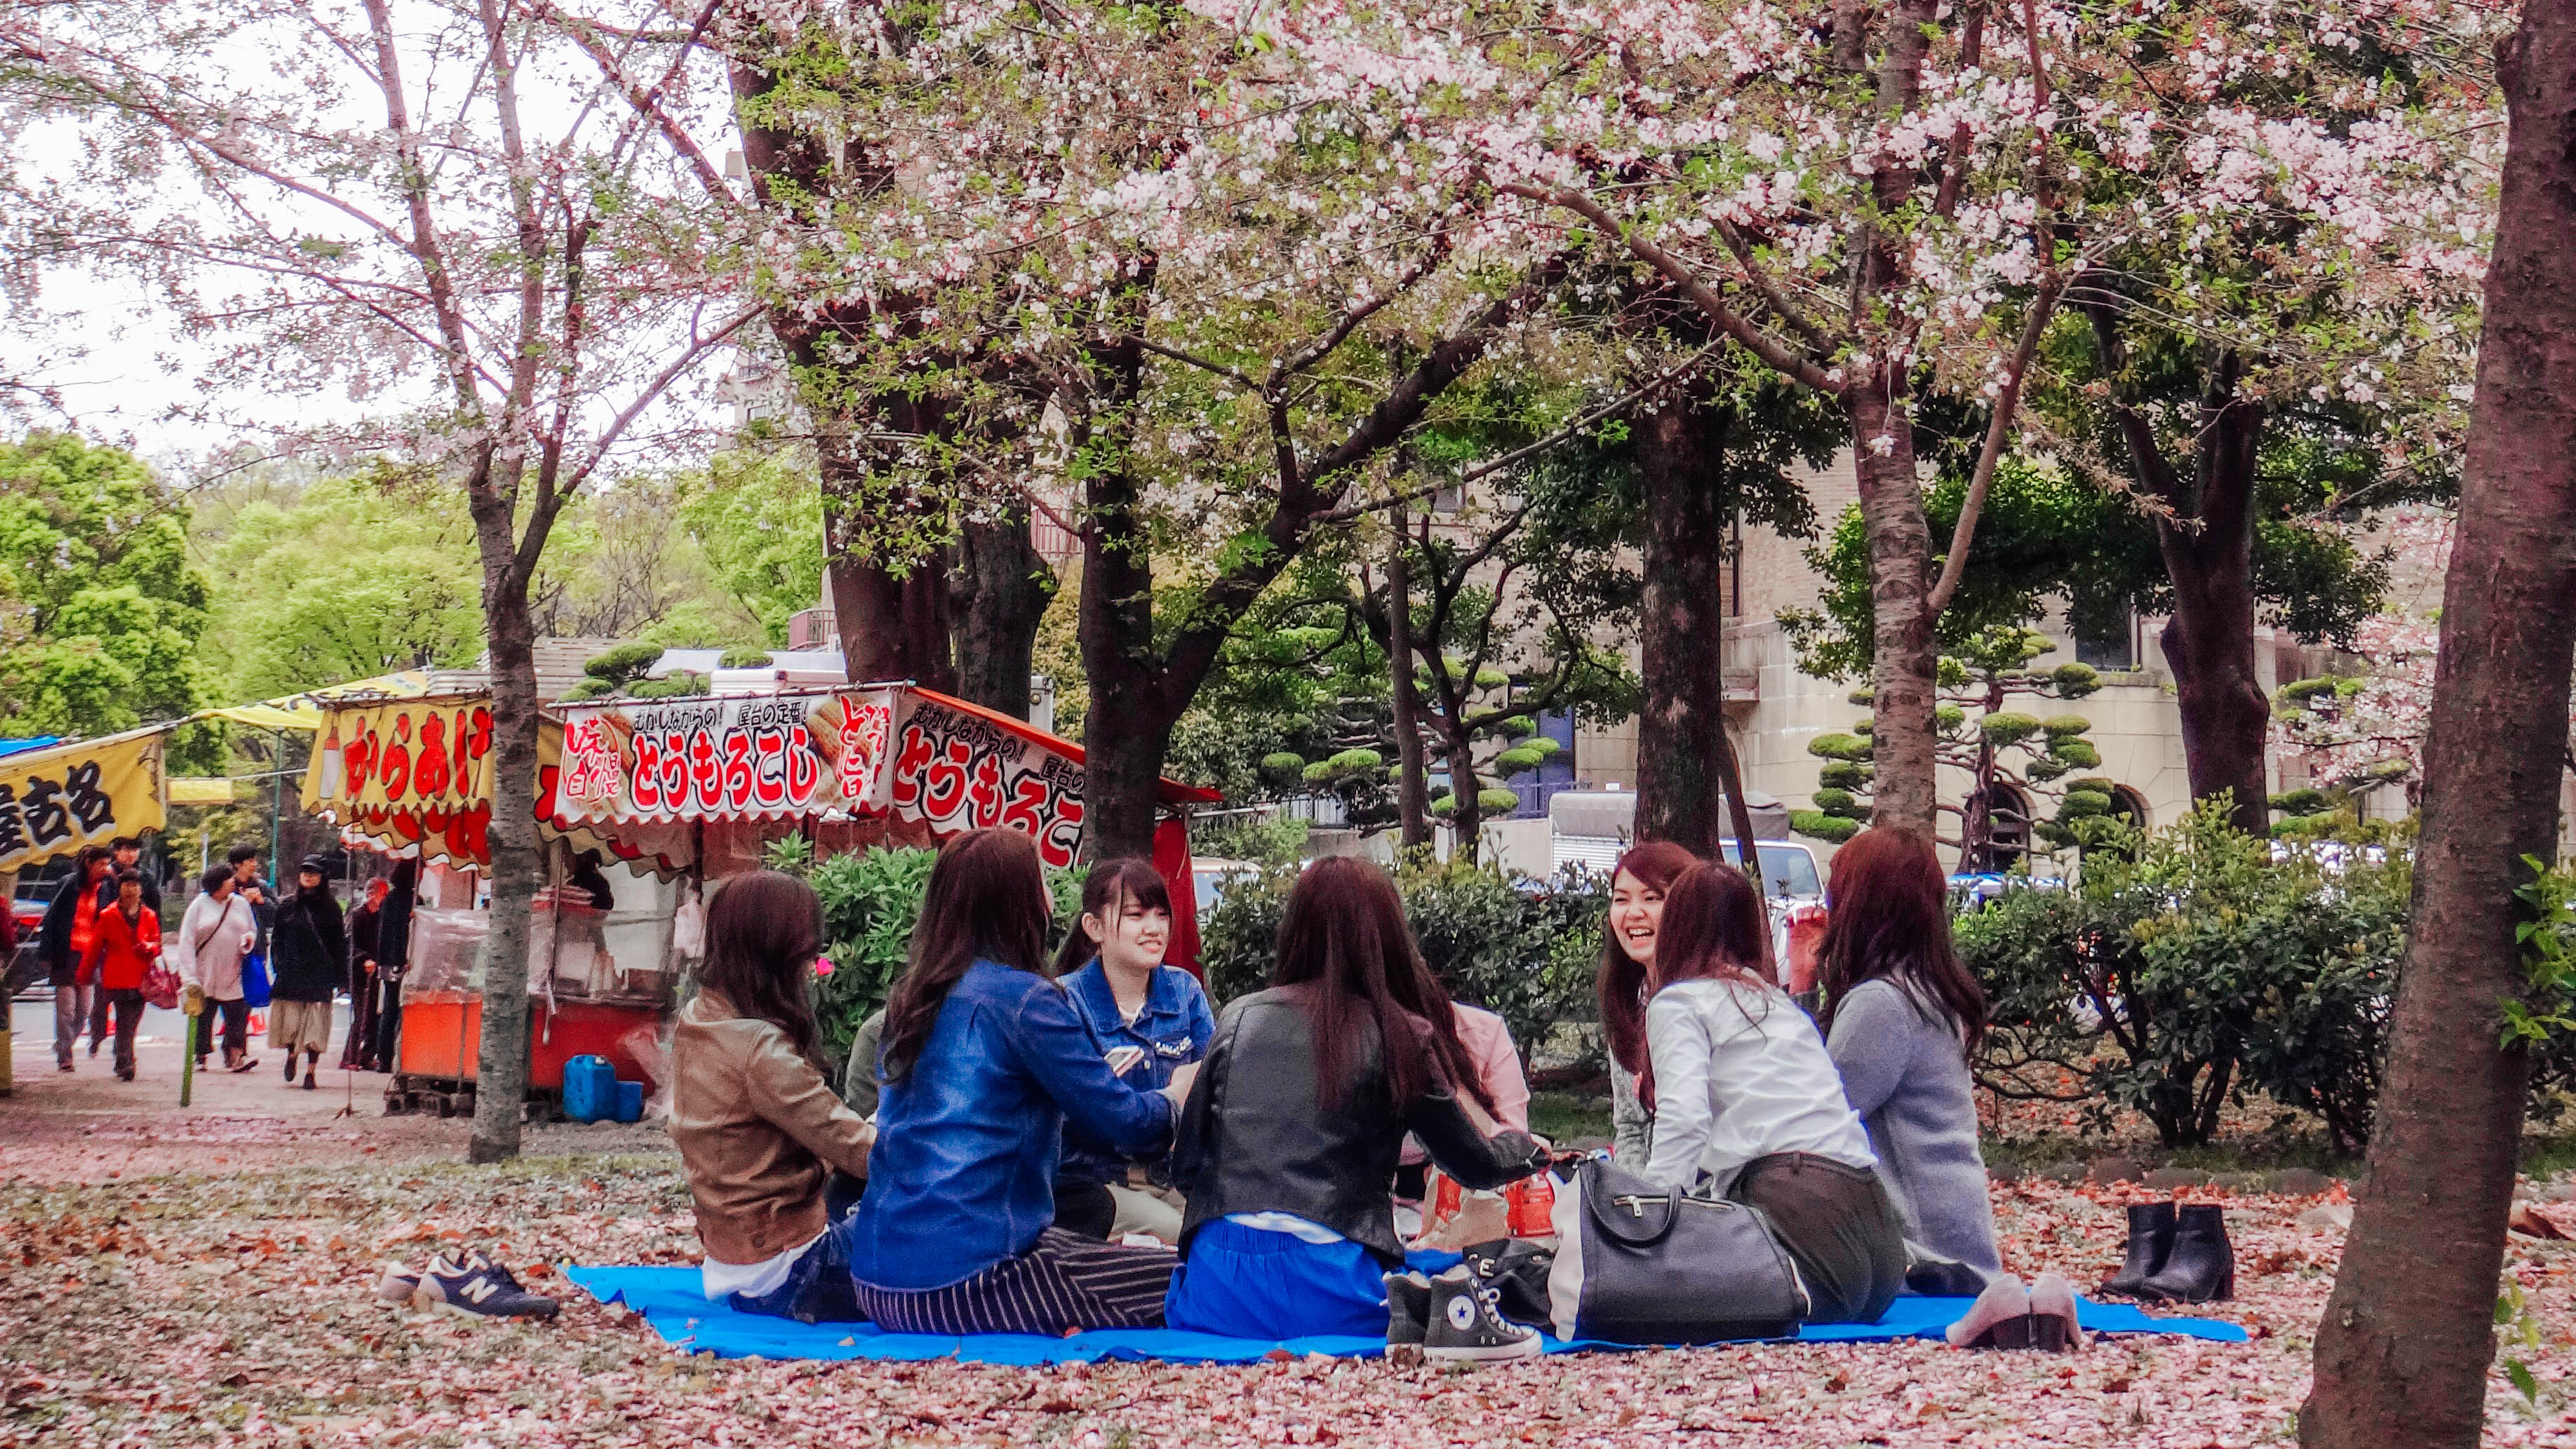 GATHER 'ROUND. Tsuruma Park, one of many beautiful sakura viewing spots in Japan. Photo provided by Irene Maligat